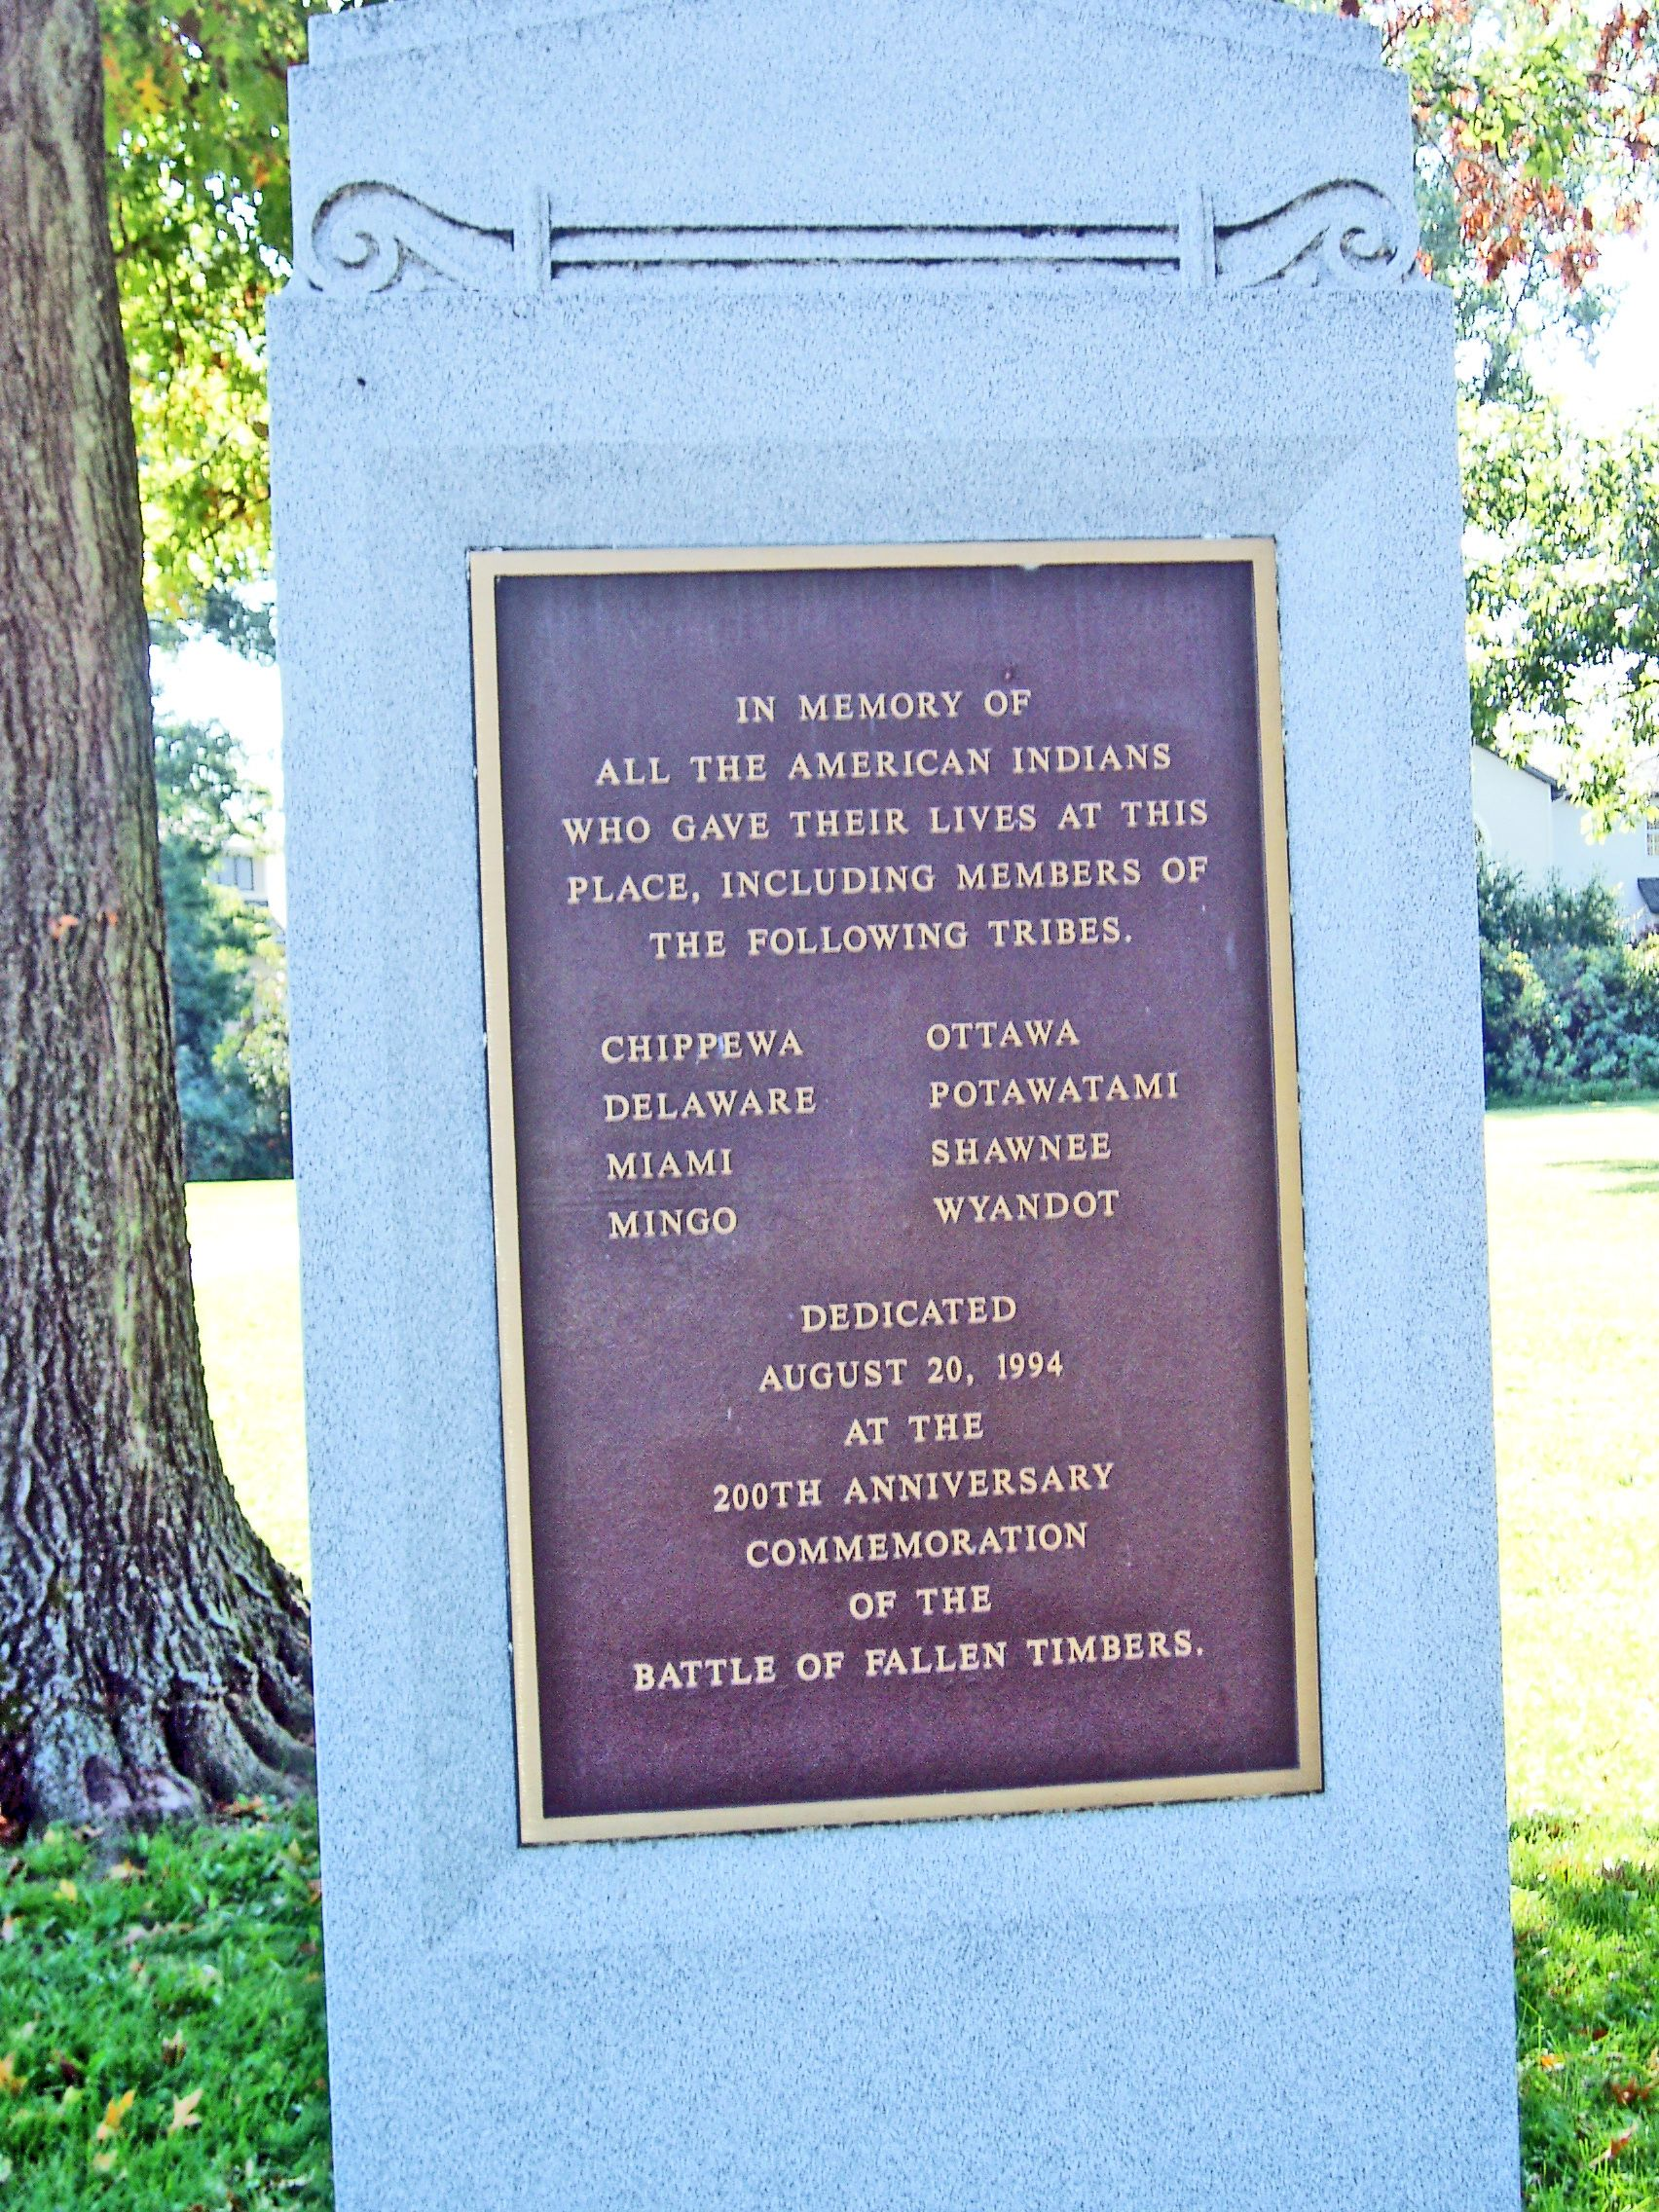 Native American Memorial marker, Fallen Timbers Battlefield and Fort Miamis National Historic Site, Ohio -  In memory of all the American Indians who gave their lives at this place, including members of the following tribes. Chippewa • Ottawa • Delaware • Potawatami • Miami • Shawnee • Mingo • Wyandot